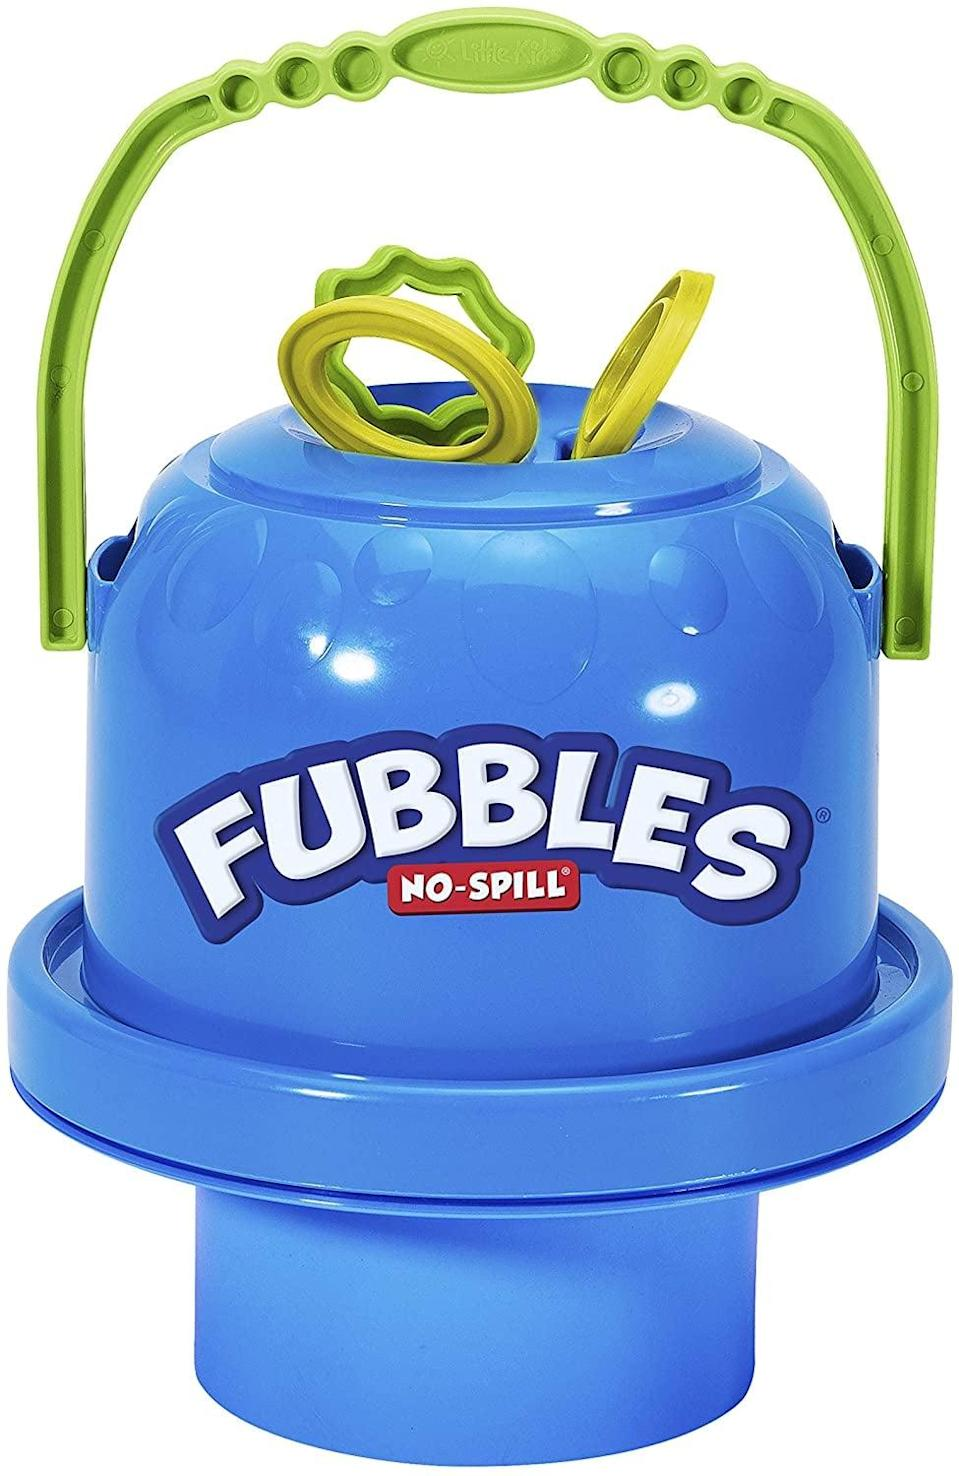 <p>Bubbles are the ultimate toddler toy, and the <span>Little Kids Fubbles No-Spill Big Bubble Bucket</span> ($13, originally $17) is perfect for your I-can-do-it toddler. With big bubble wands in a spill-proof bucket, kids can blow bubbles all day.</p>